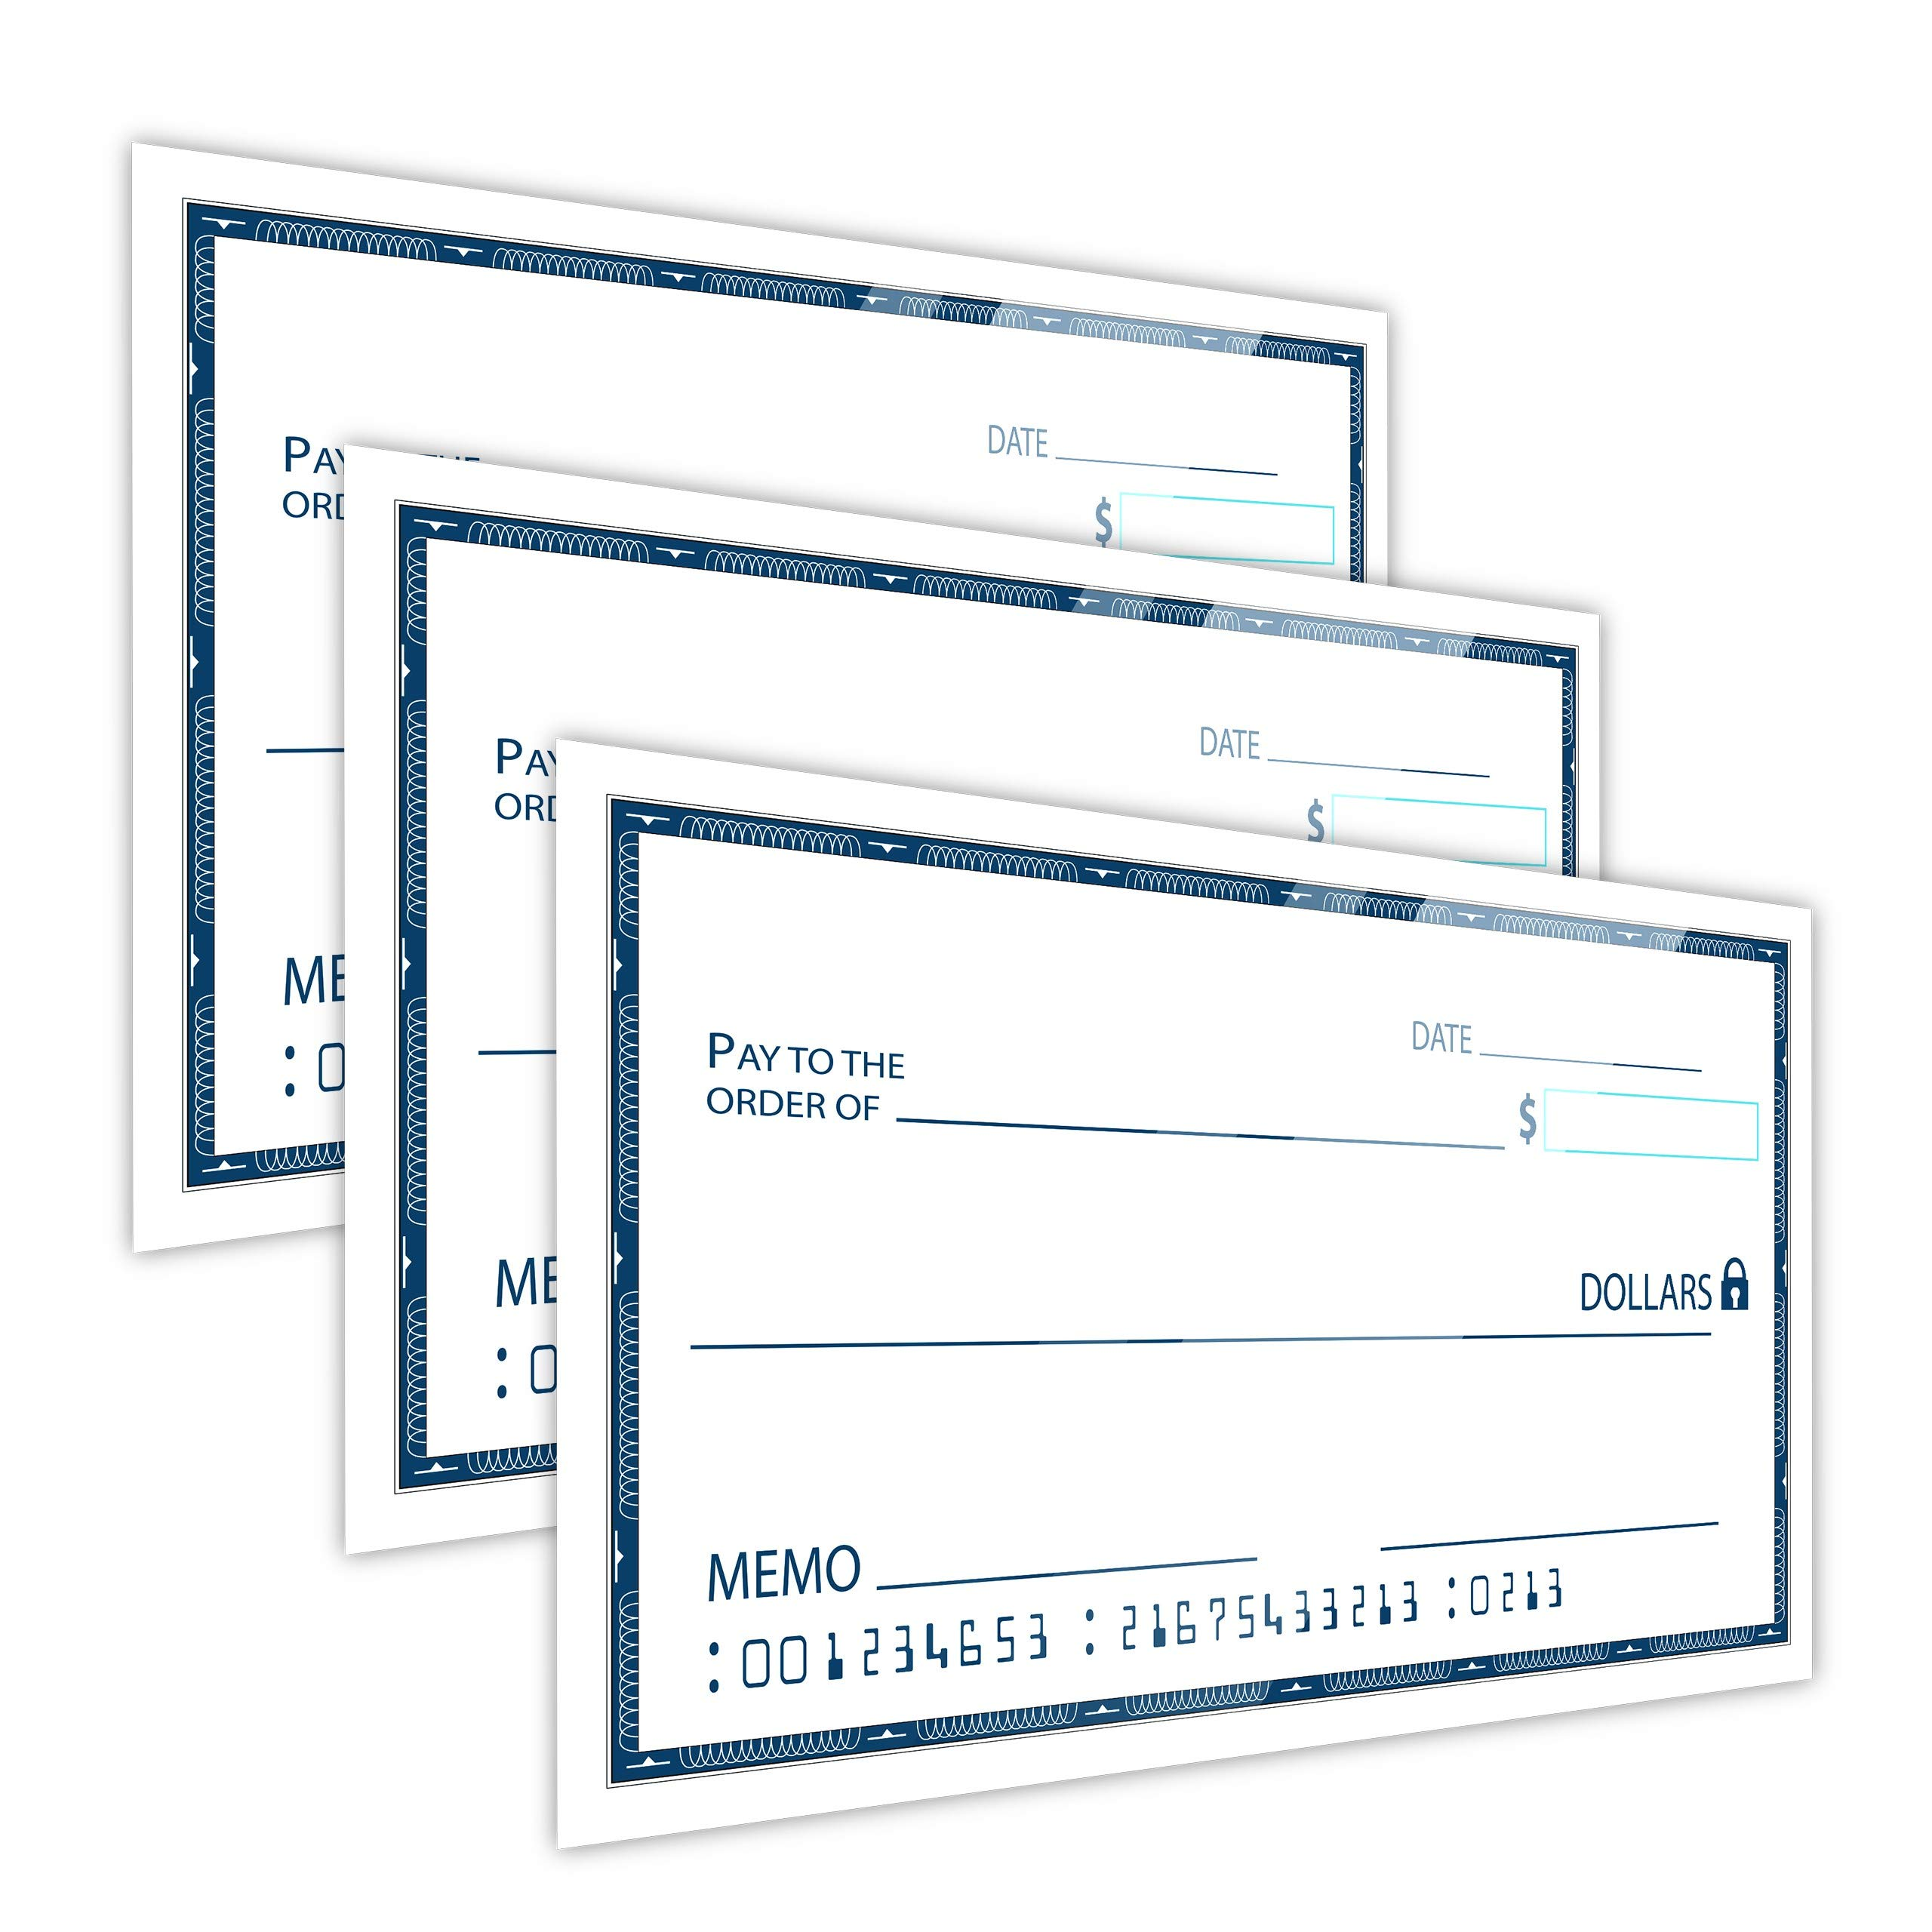 [Dry Erase] 16'' x 24'' Oversize Giant Check - Large Fake Checks - Reusable Big Blank Presentation Check for Charity Donation, Lottery, Raffle, Novelty, Fundraiser, Endowment, Gag Gift (White) (3) by JJ CARE